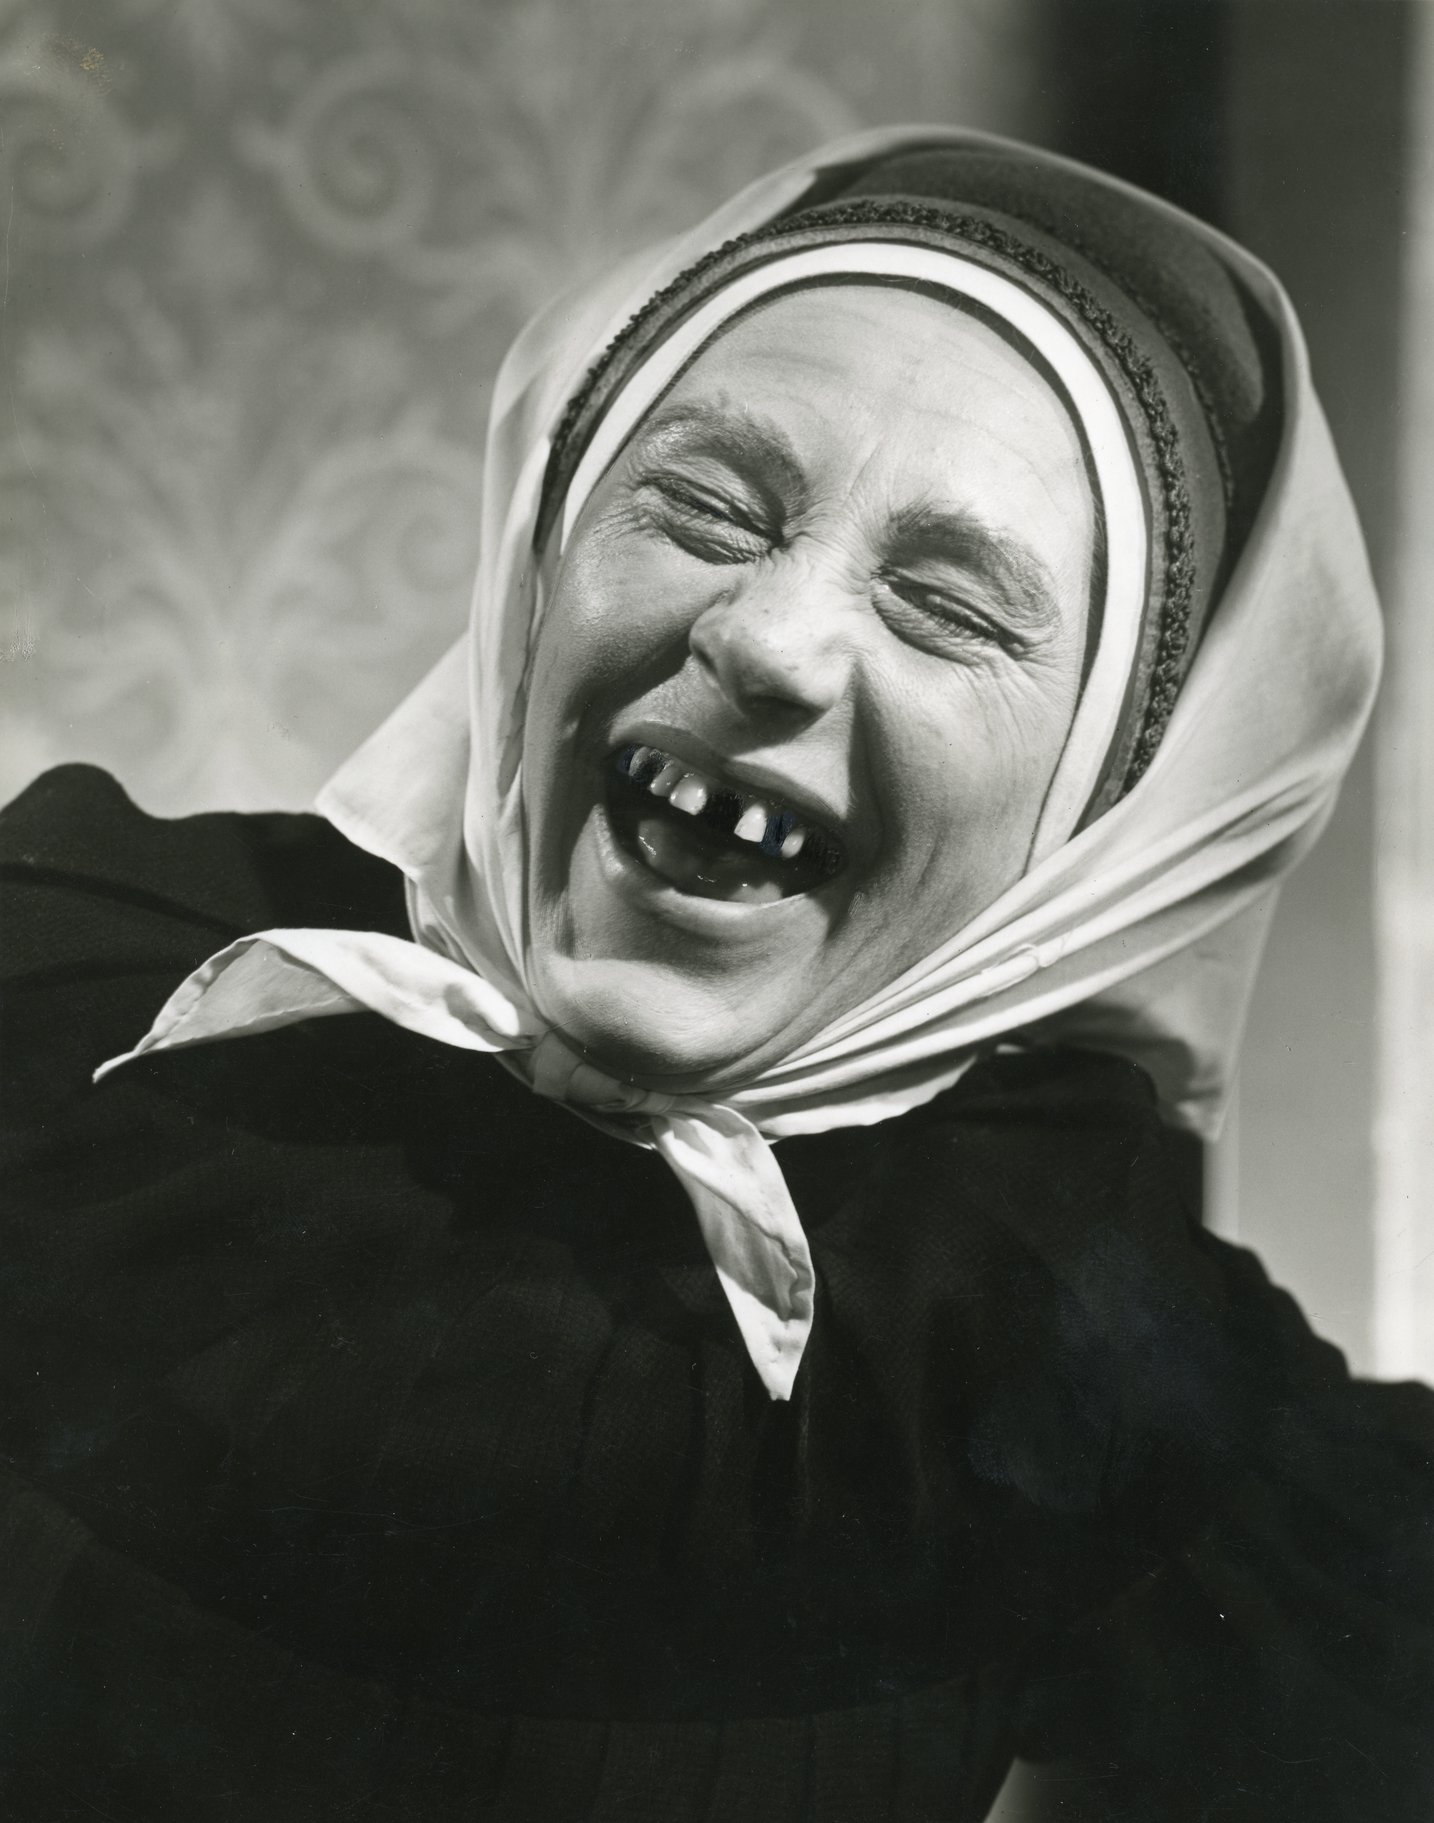 Angela Baddeley as the Nurse, laughing.